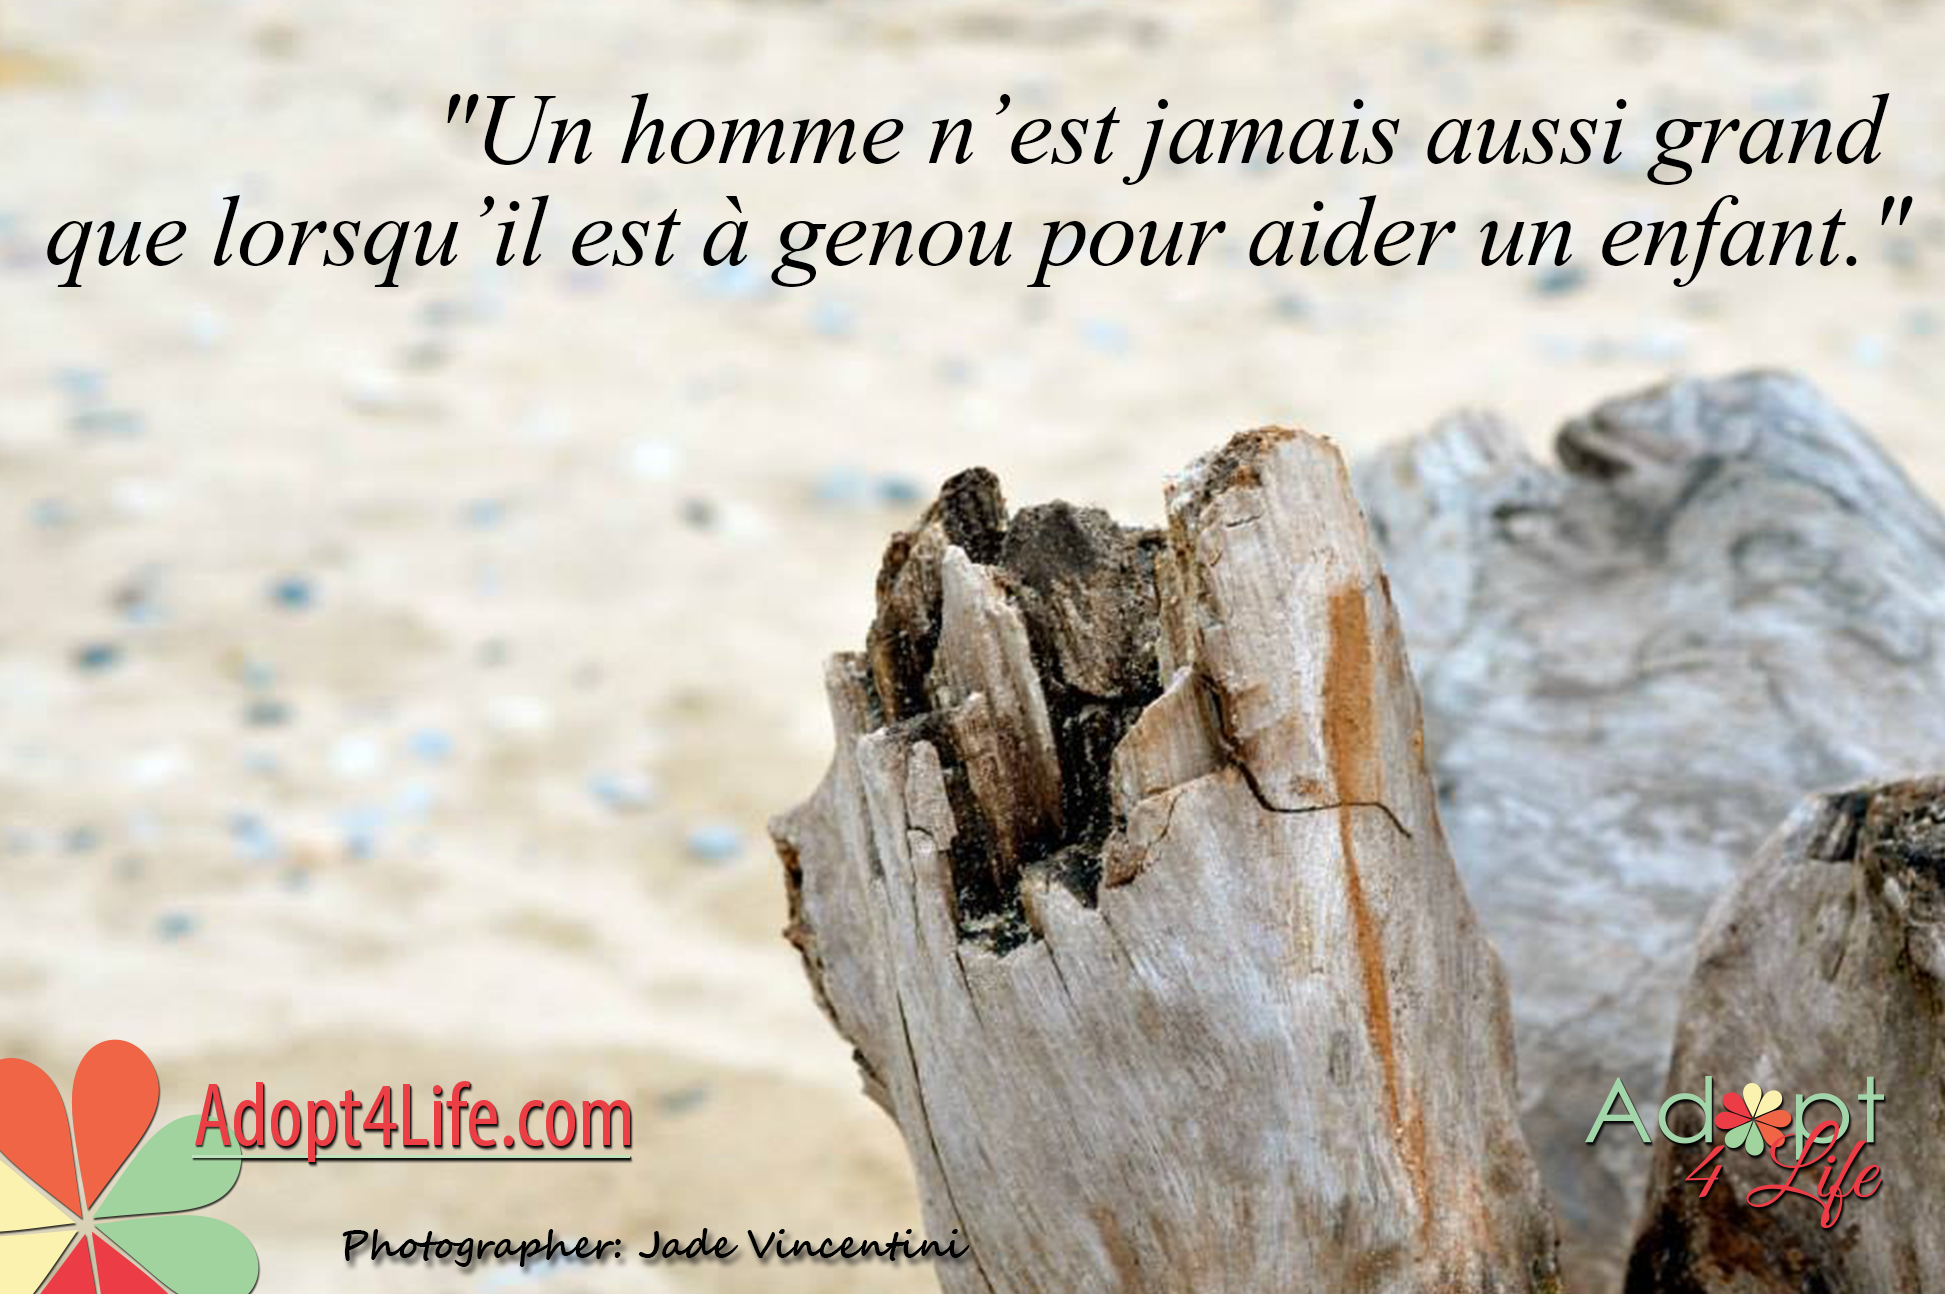 Facebook_AdoptionQuote_French_015_Dec2014_png.png